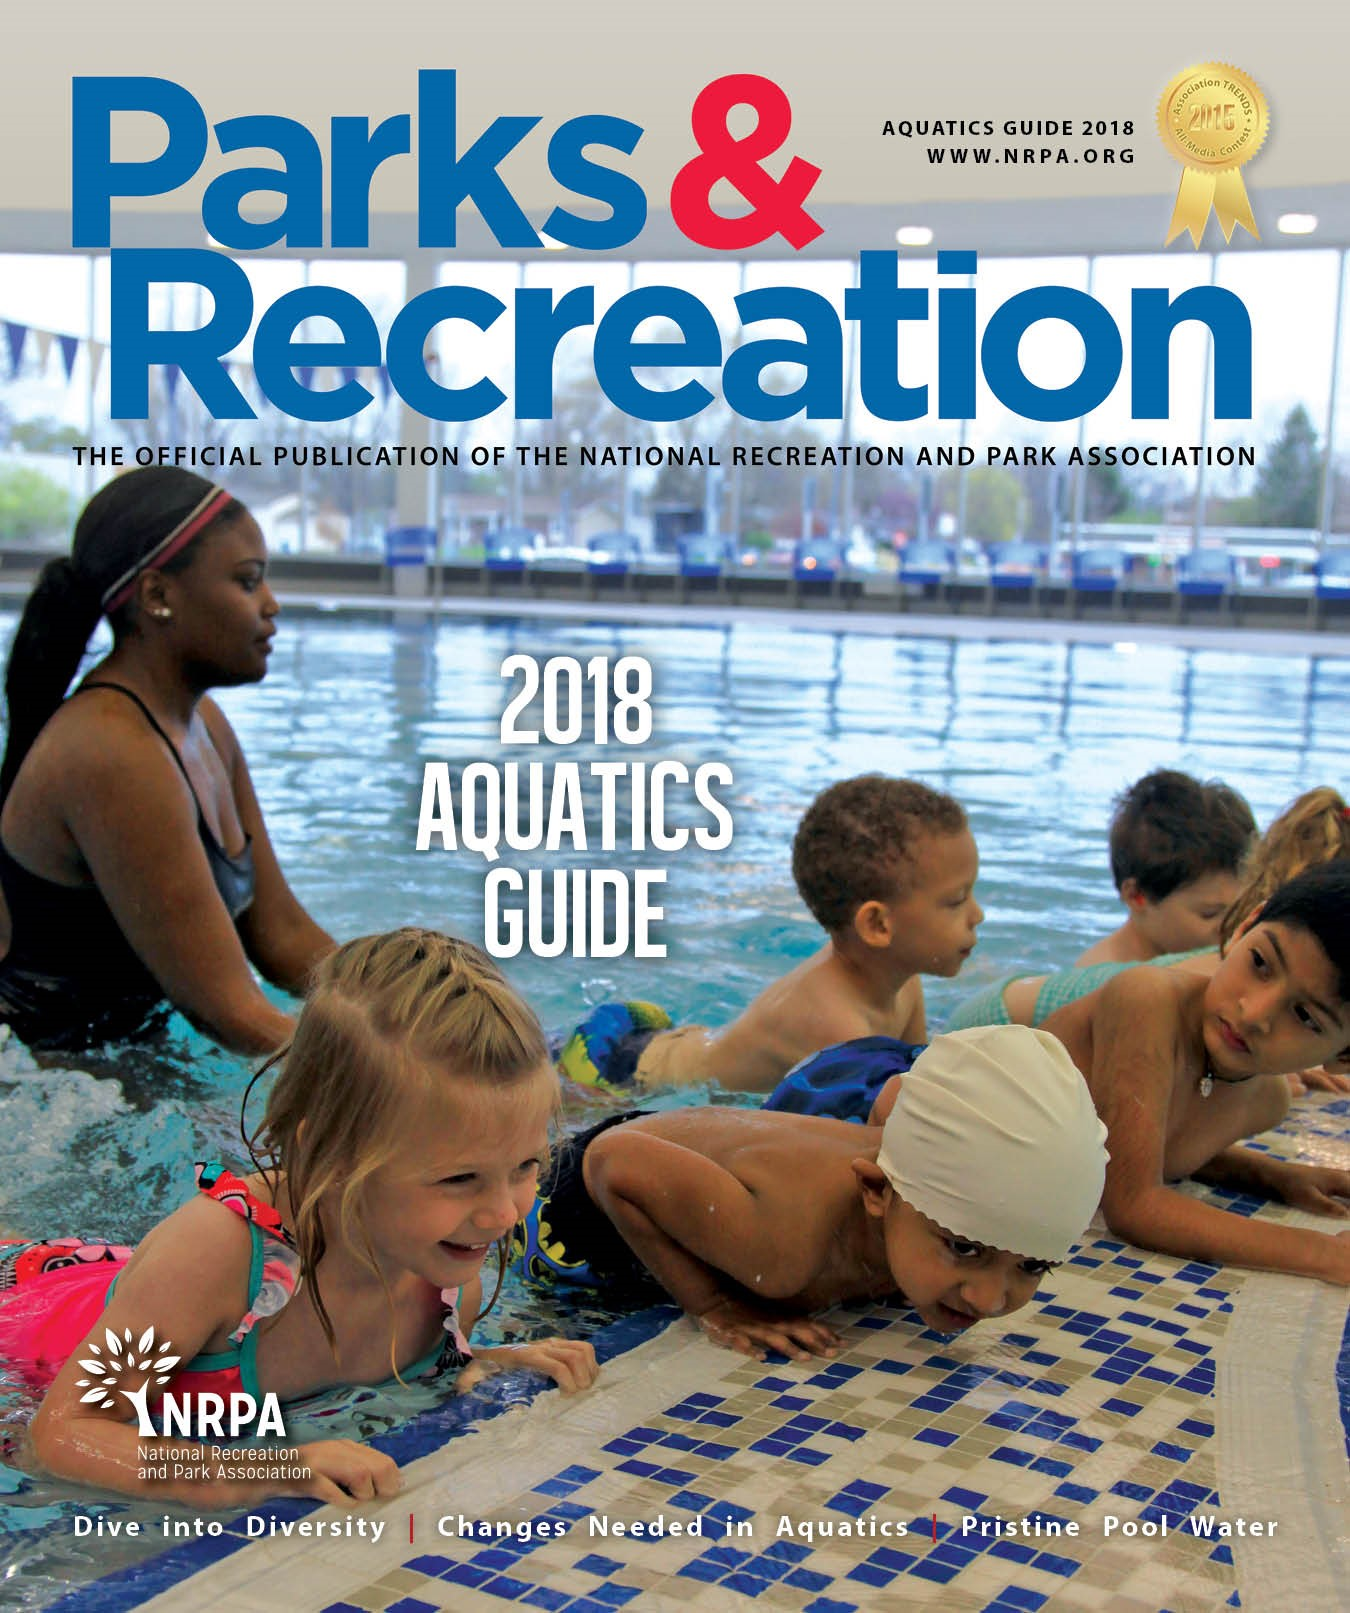 Parks and Recreation magazine Aquatics Guide